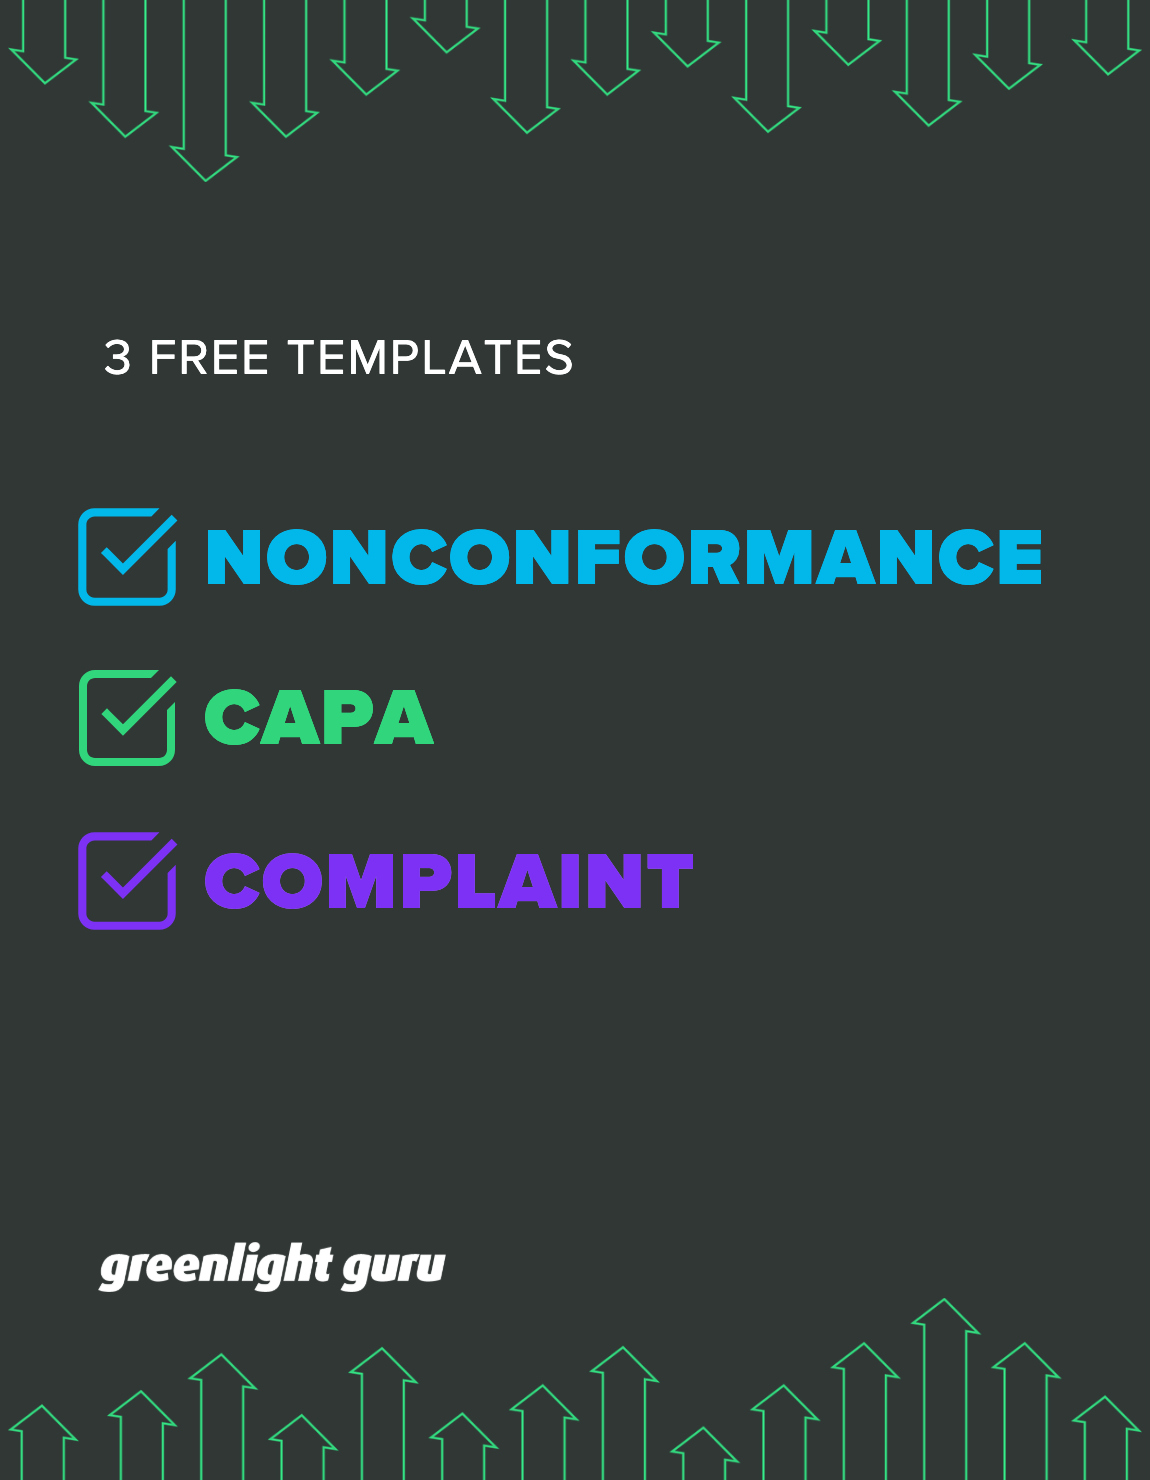 3 Free Templates for NC, CAPA, Complaint slide-in cover